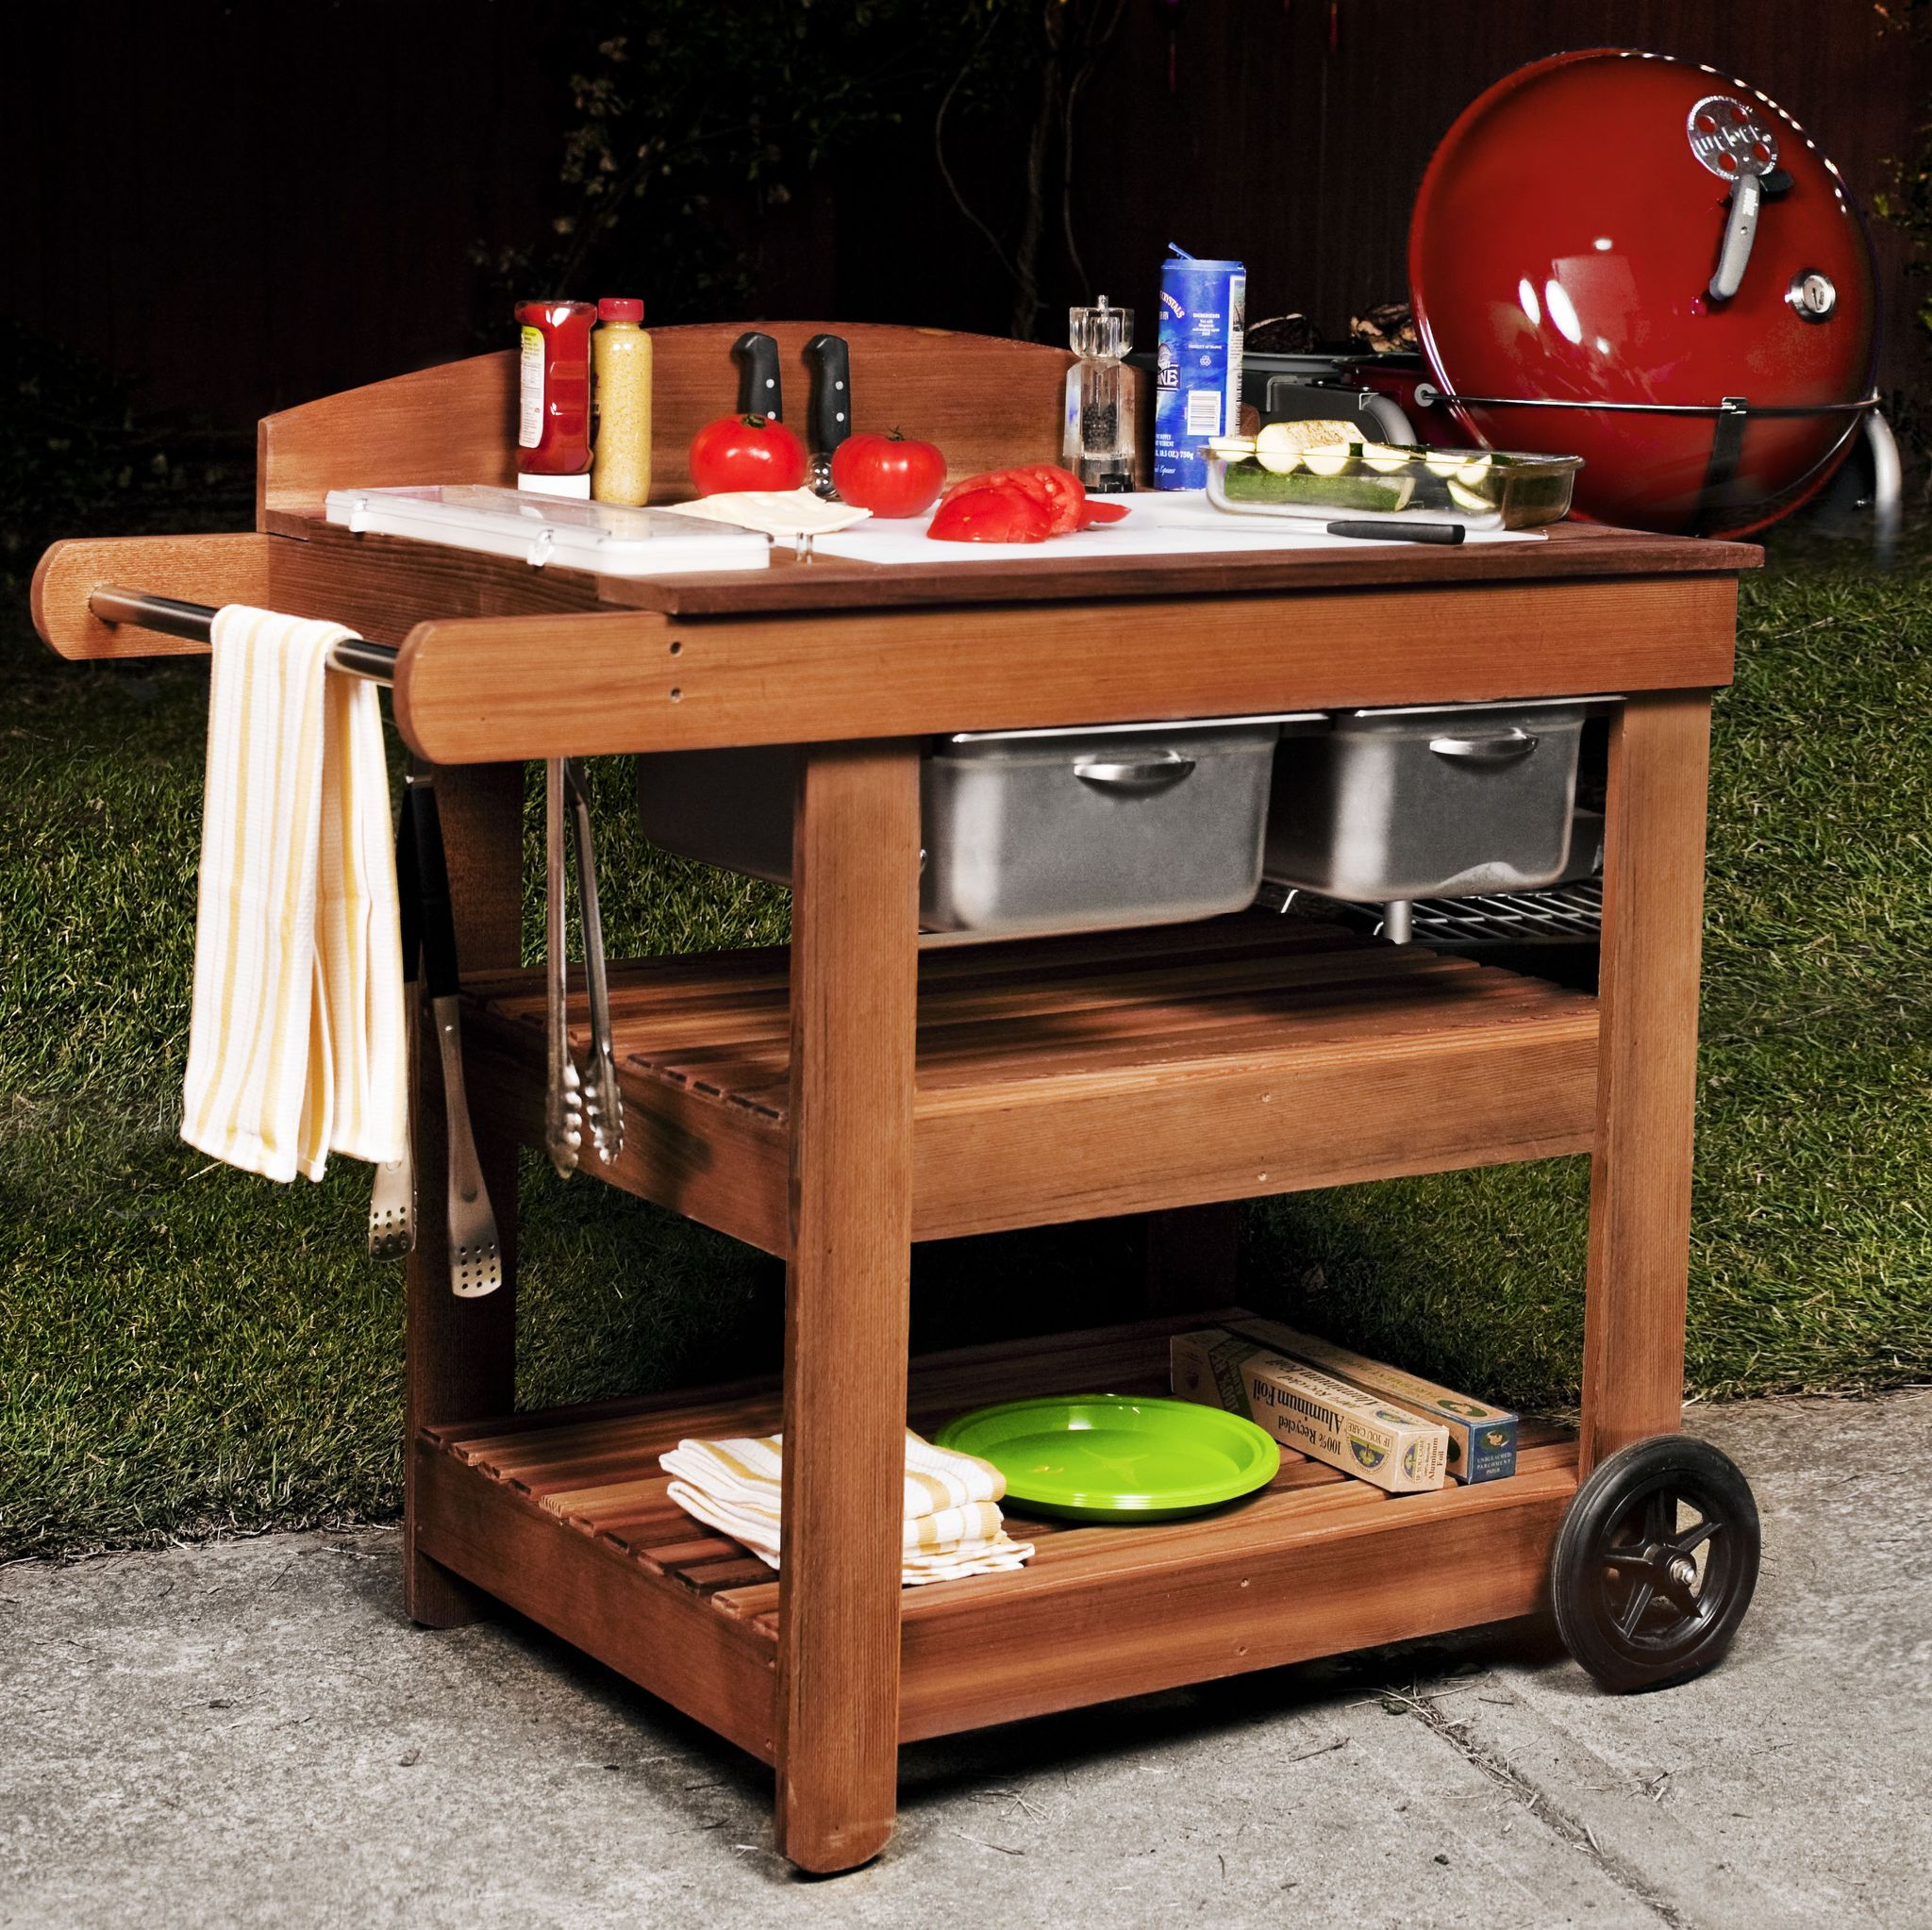 Build This Grill Table as the Ultimate BBQ Sidekick